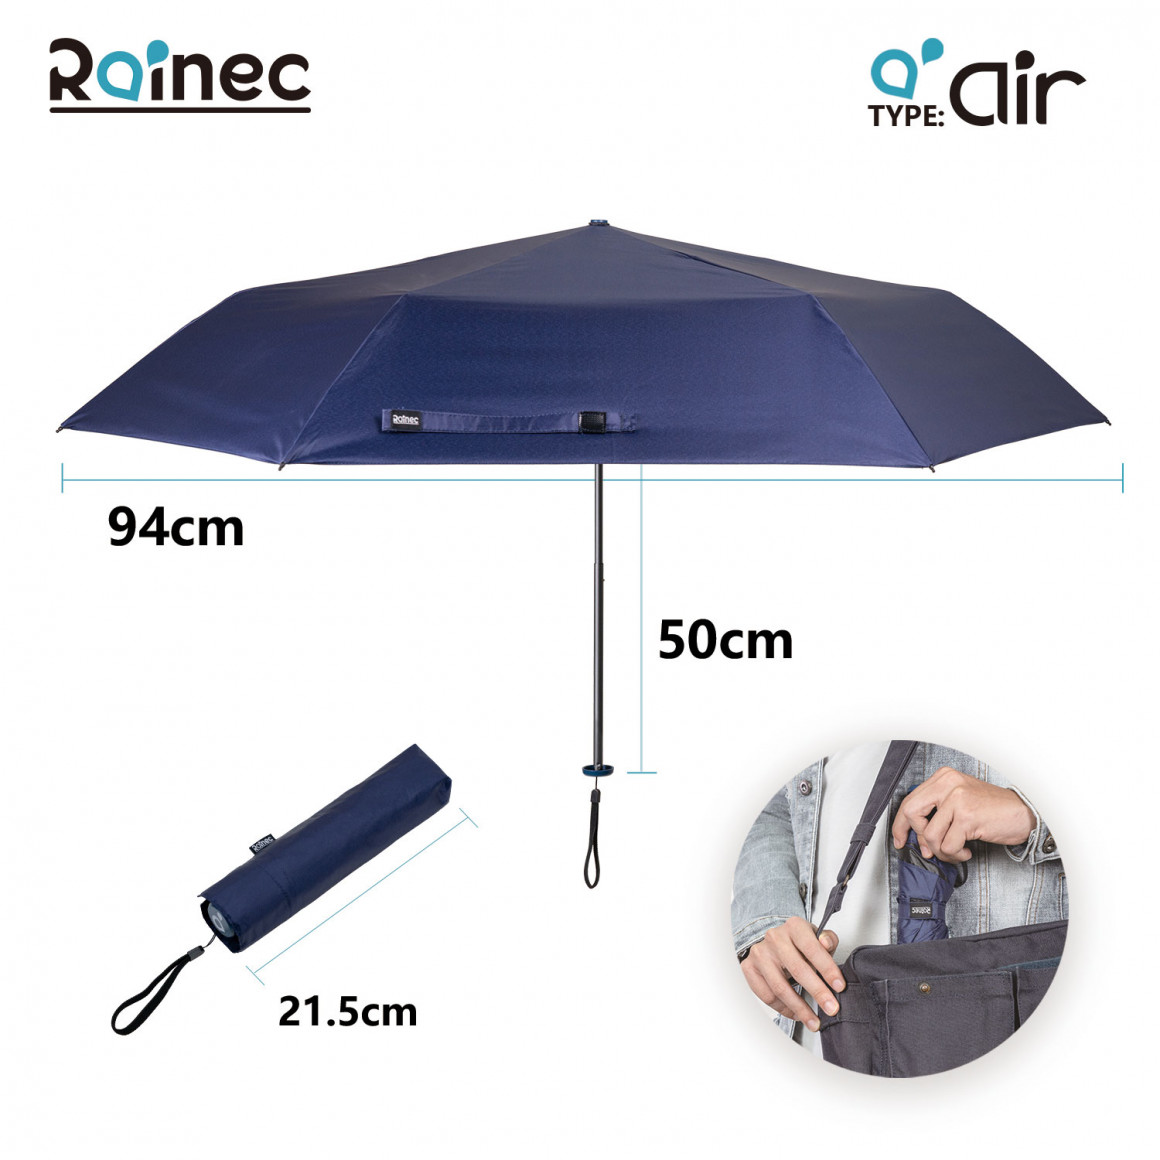 rainec-air-blue-02-1160x1160.jpg